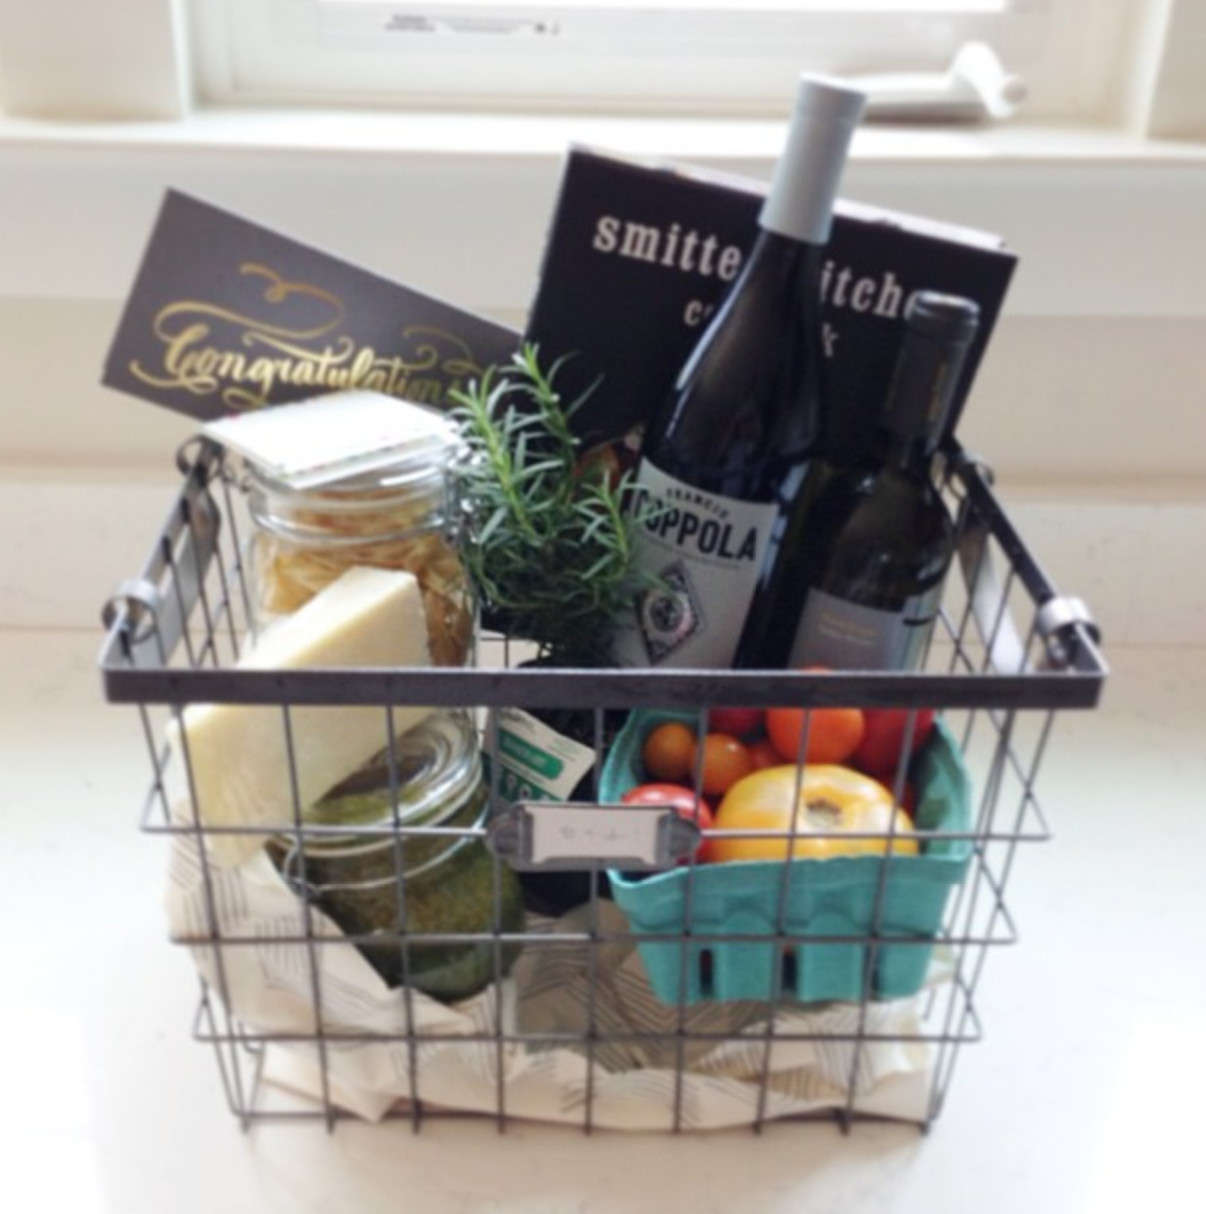 Best ideas about Pinterest Gift Basket Ideas . Save or Pin t basket Ellees ideas Now.